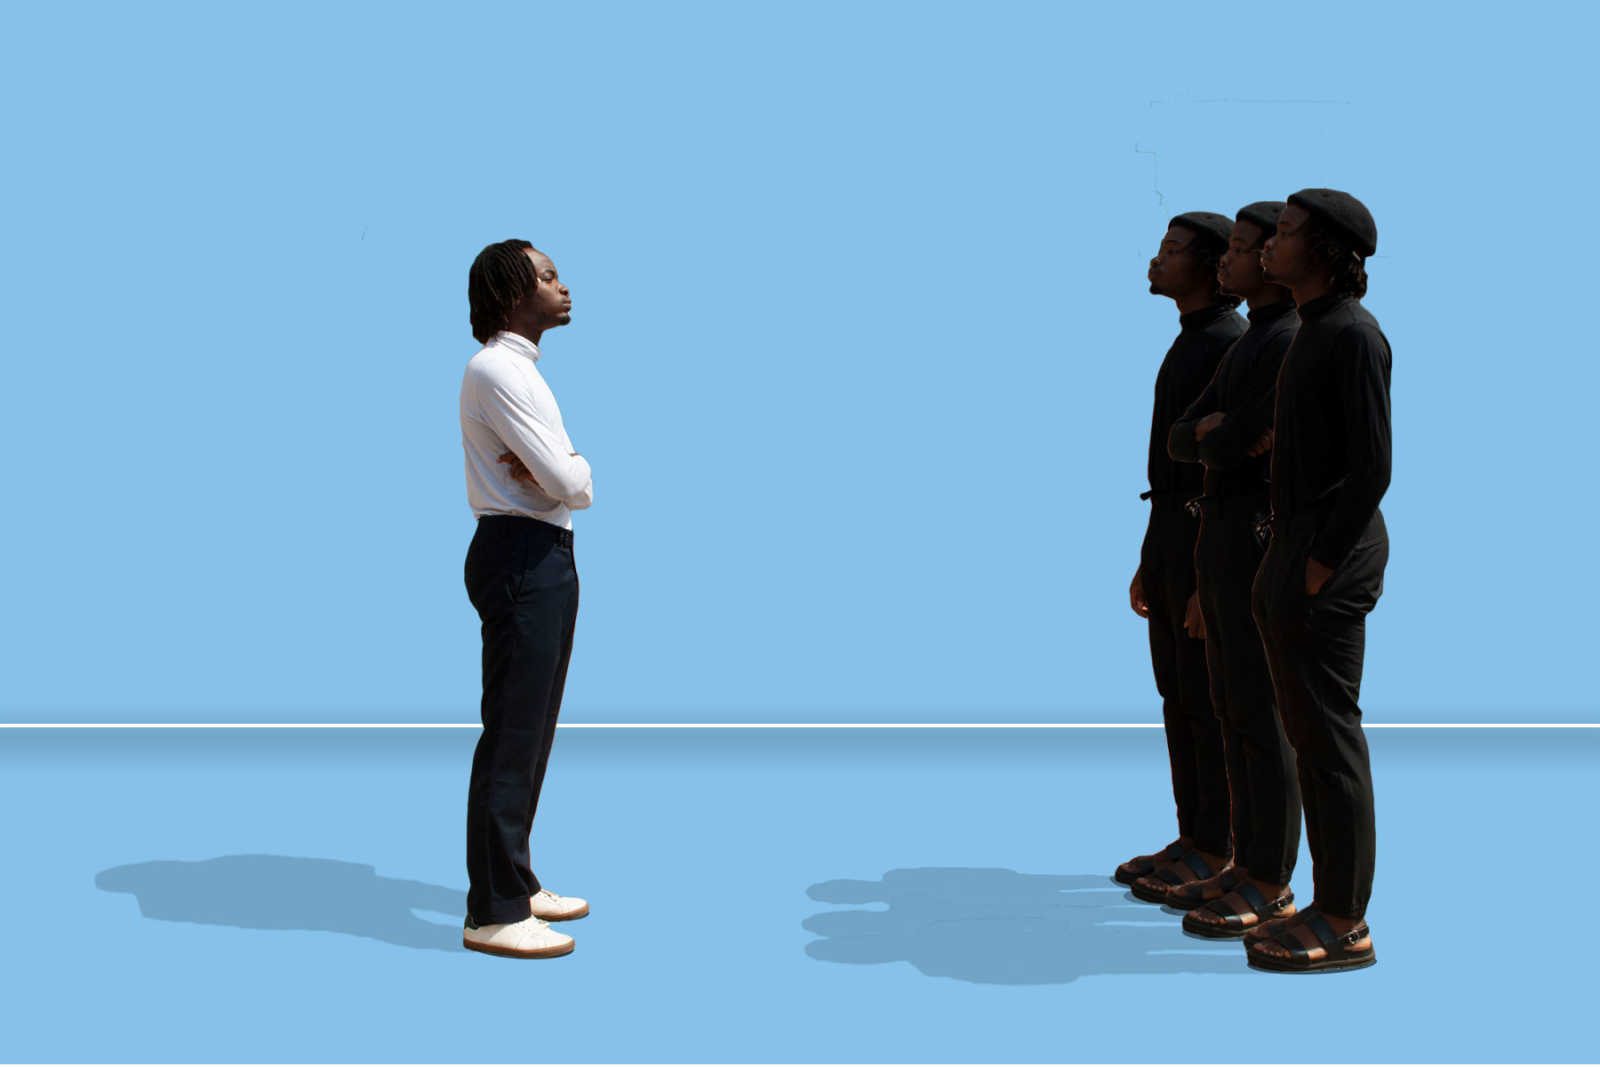 A Black man standing in front of a group of Black men